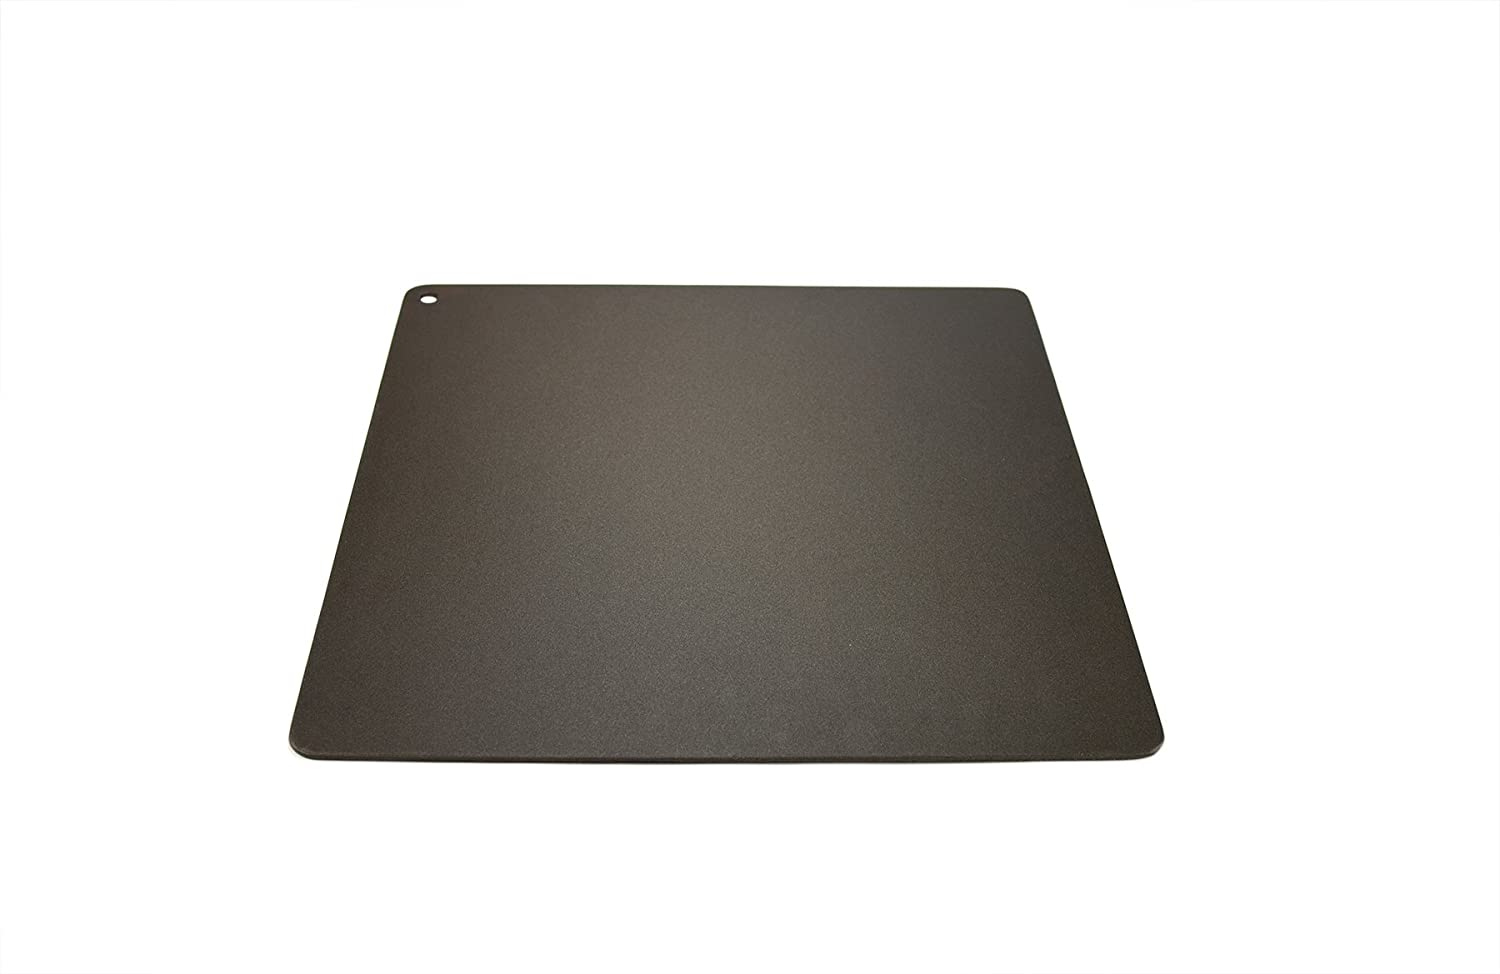 Pizzacraft Square Steel Baking Plate for Kitchen or Barbeque Grill, 14 by 14 - PC0308 Charcoal Companion